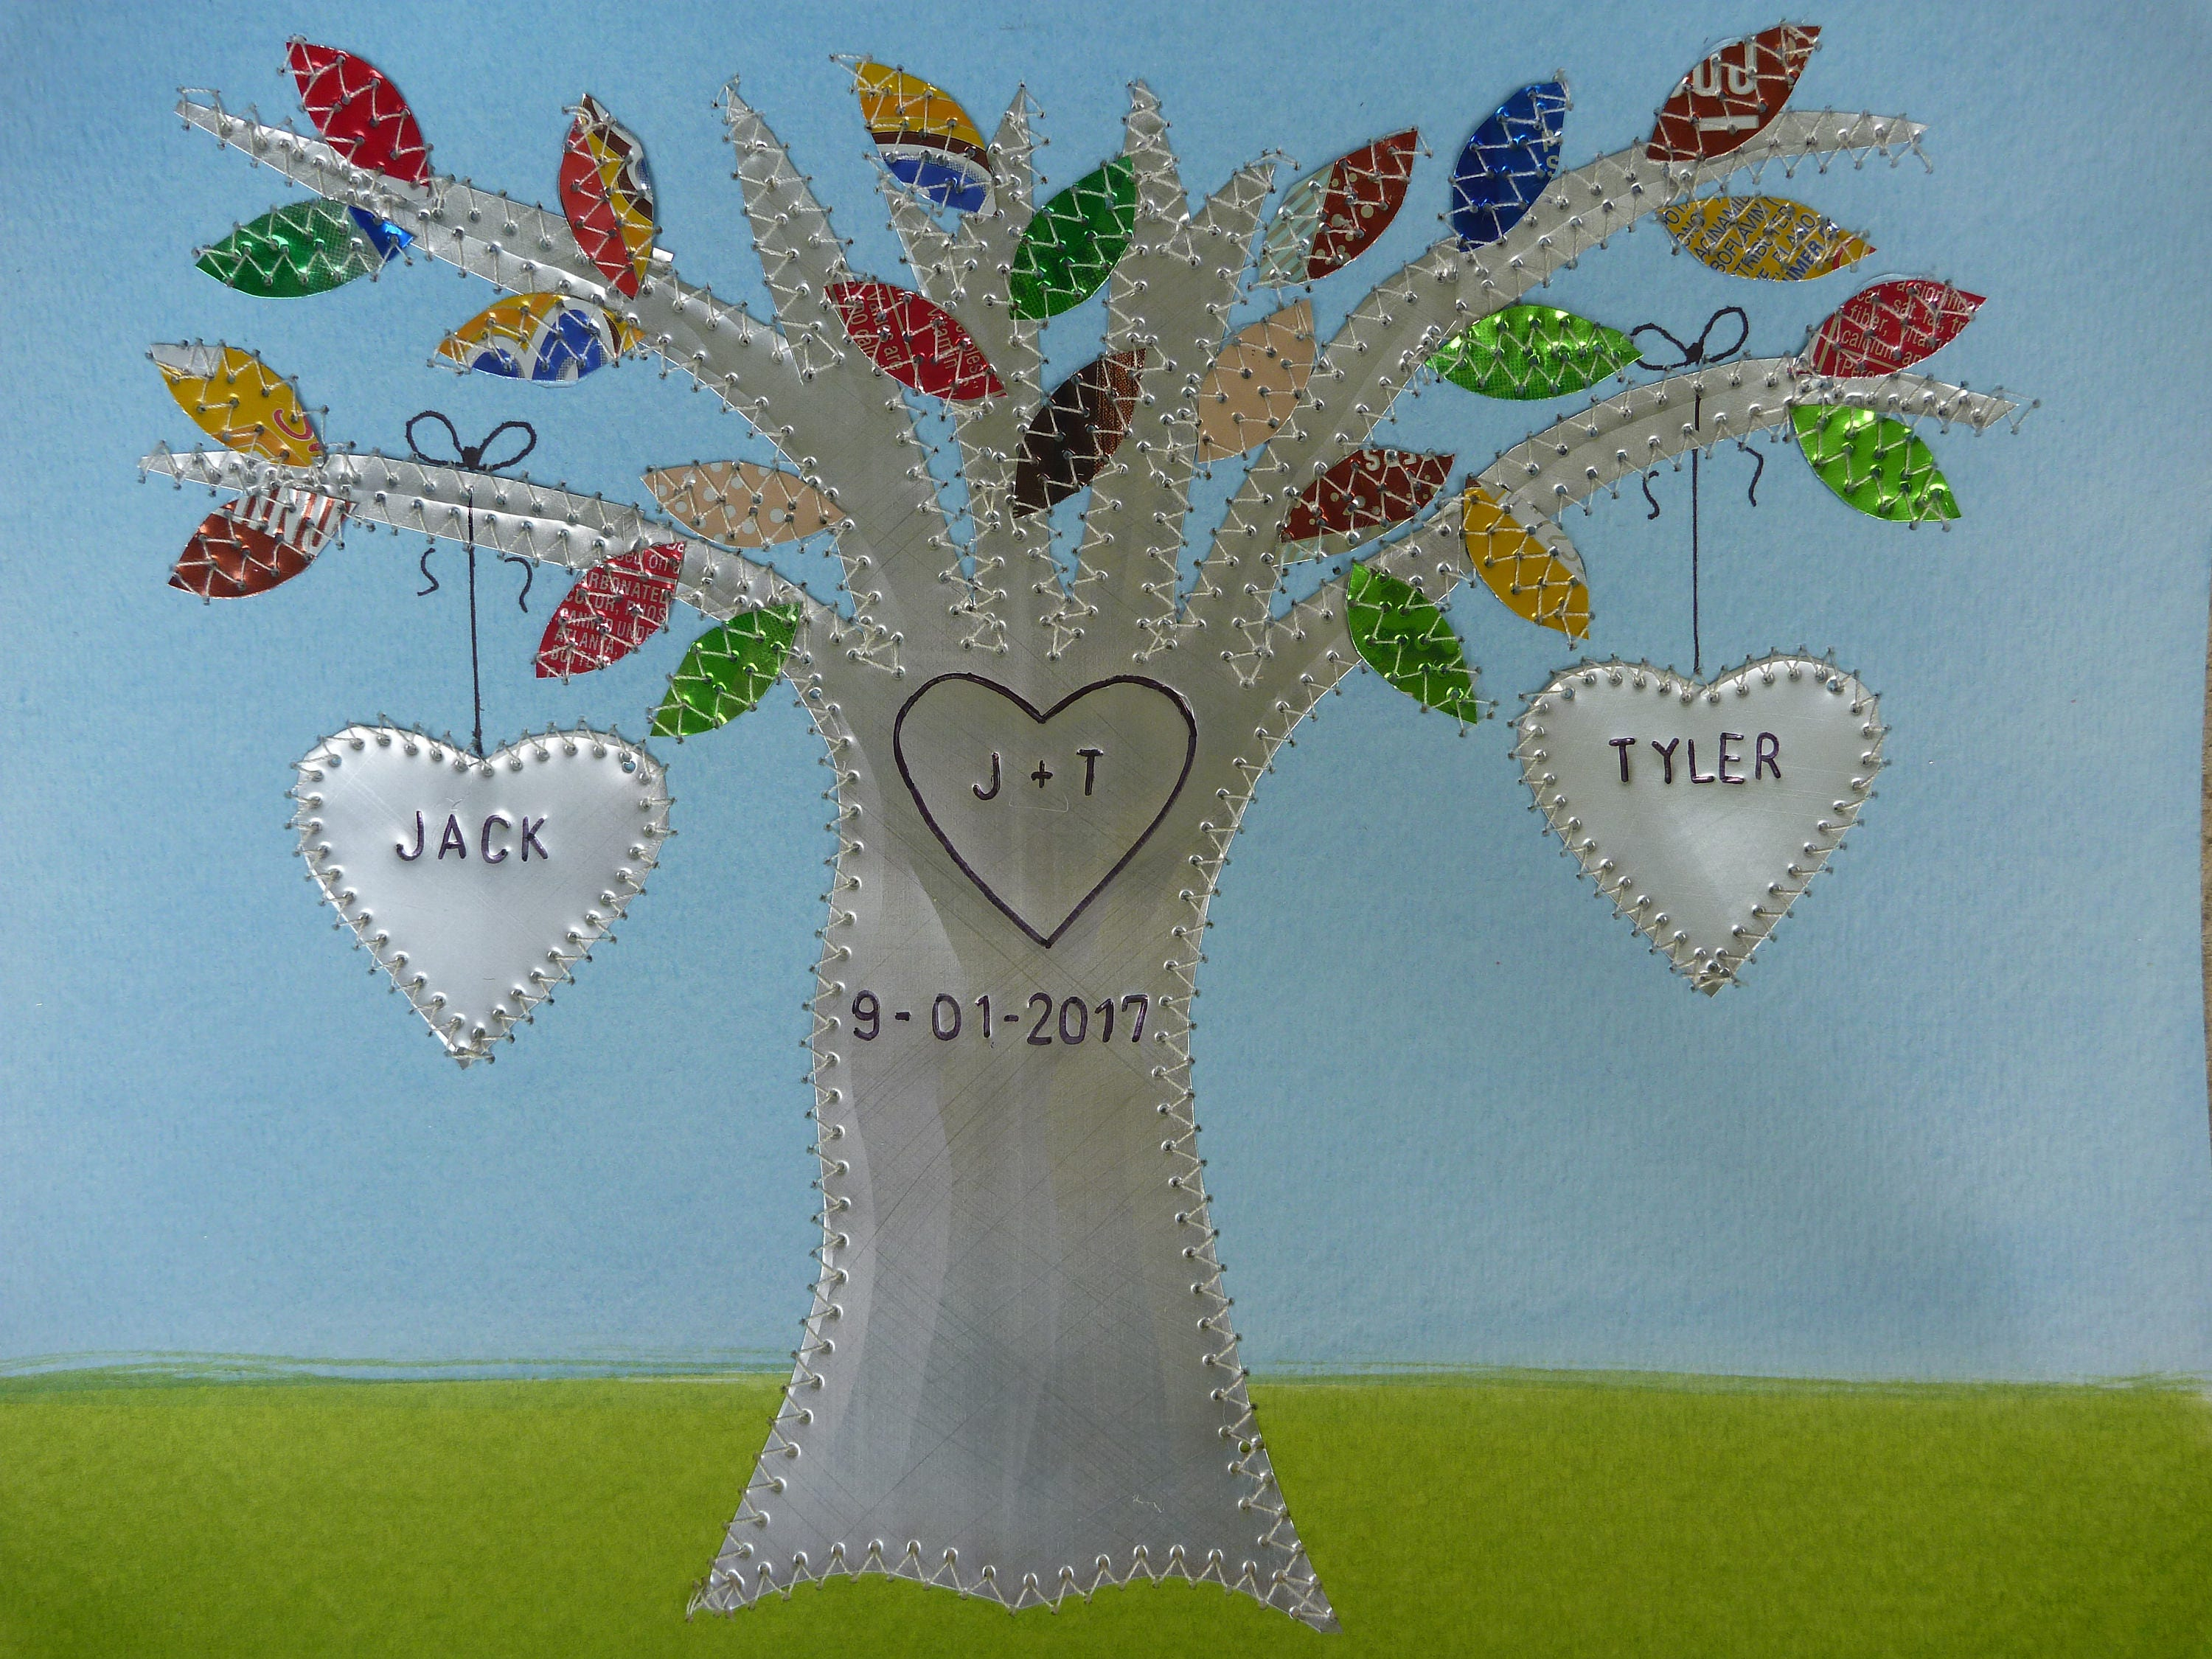 Tin Wedding Anniversary Gift: Tin Year Anniversary Gift Aluminum Wedding Tree Gift